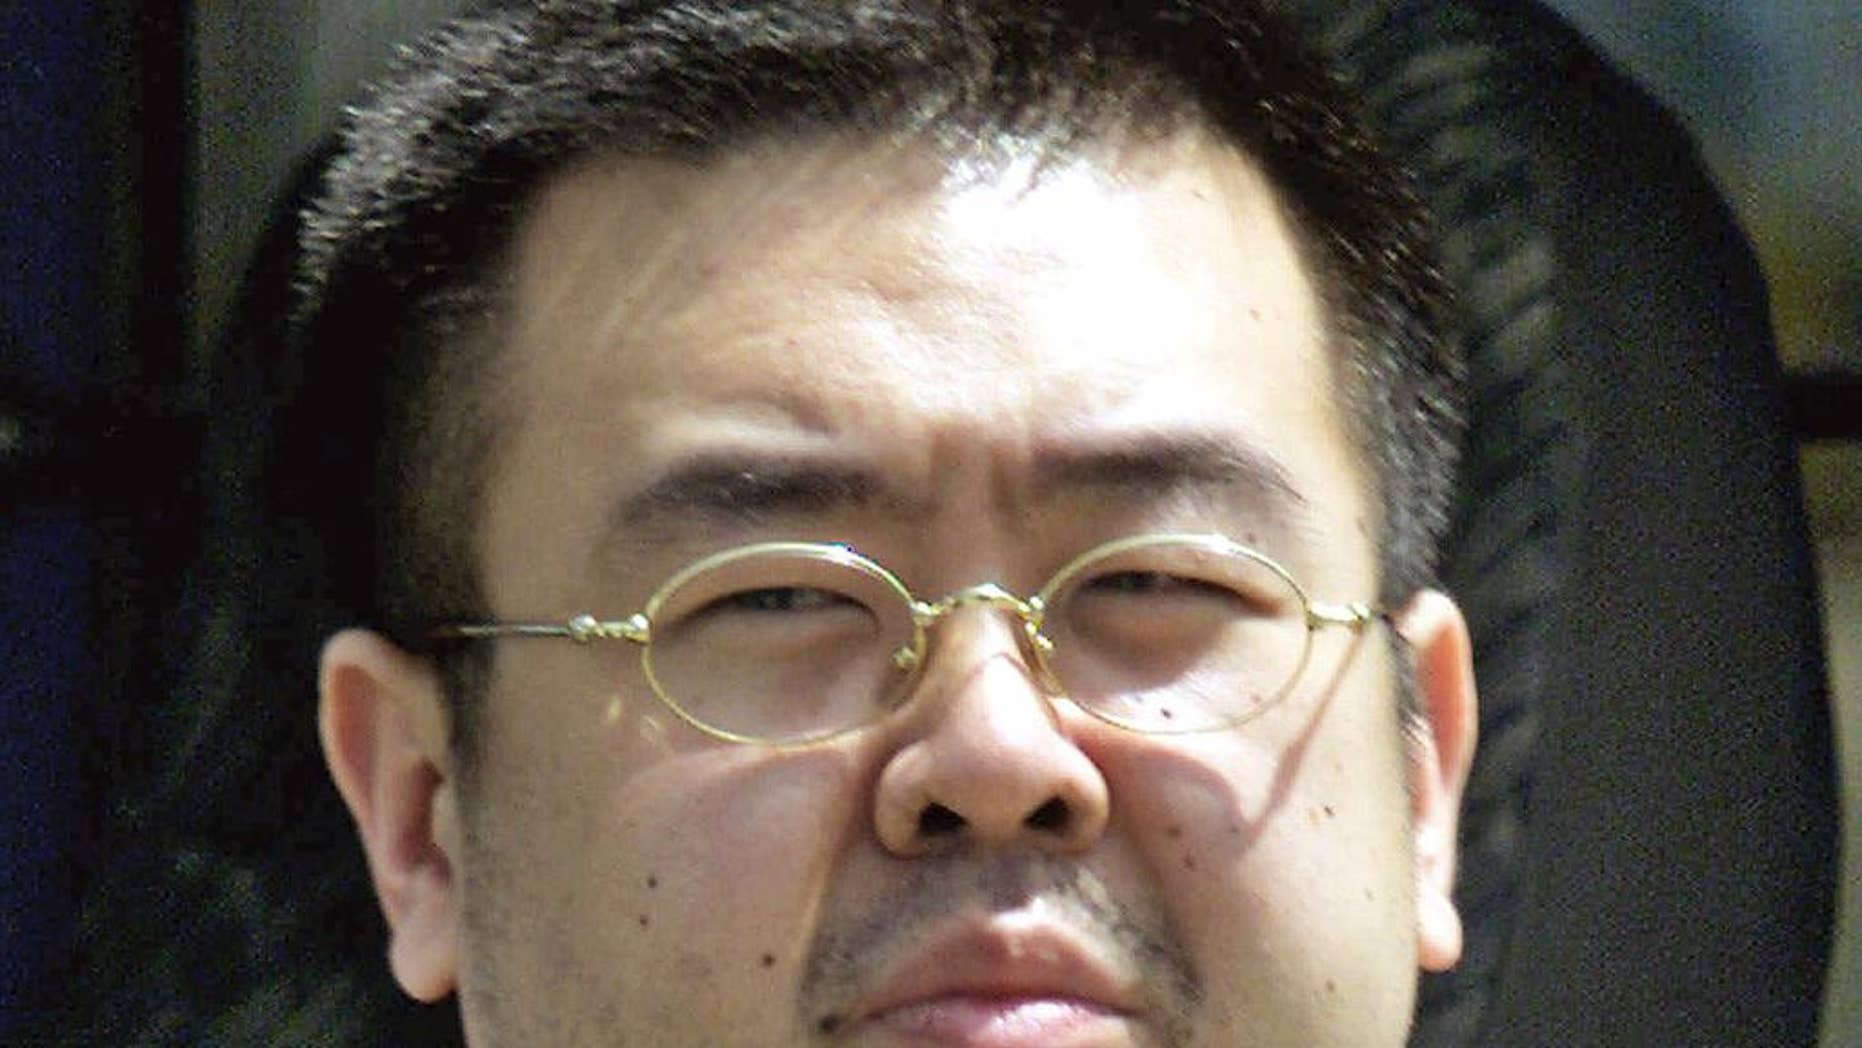 FILE - This May 4, 2001, file photo shows Kim Jong Nam, exiled half brother of North Korea's leader Kim Jong Un, in Narita, Japan. Kim Jong Nam, 46, was targeted Monday, Feb. 13, 2017, in the Kuala Lumpur International Airport, Malaysia, and later died on the way to the hospital according to a Malaysian government official. Malaysia's Deputy Prime Minister Ahmad Zahid Hamidi says the identity of Kim Jong Nam, who was killed last month, was confirmed with the DNA sample from one of his children. (AP Photos/Shizuo Kambayashi, File)